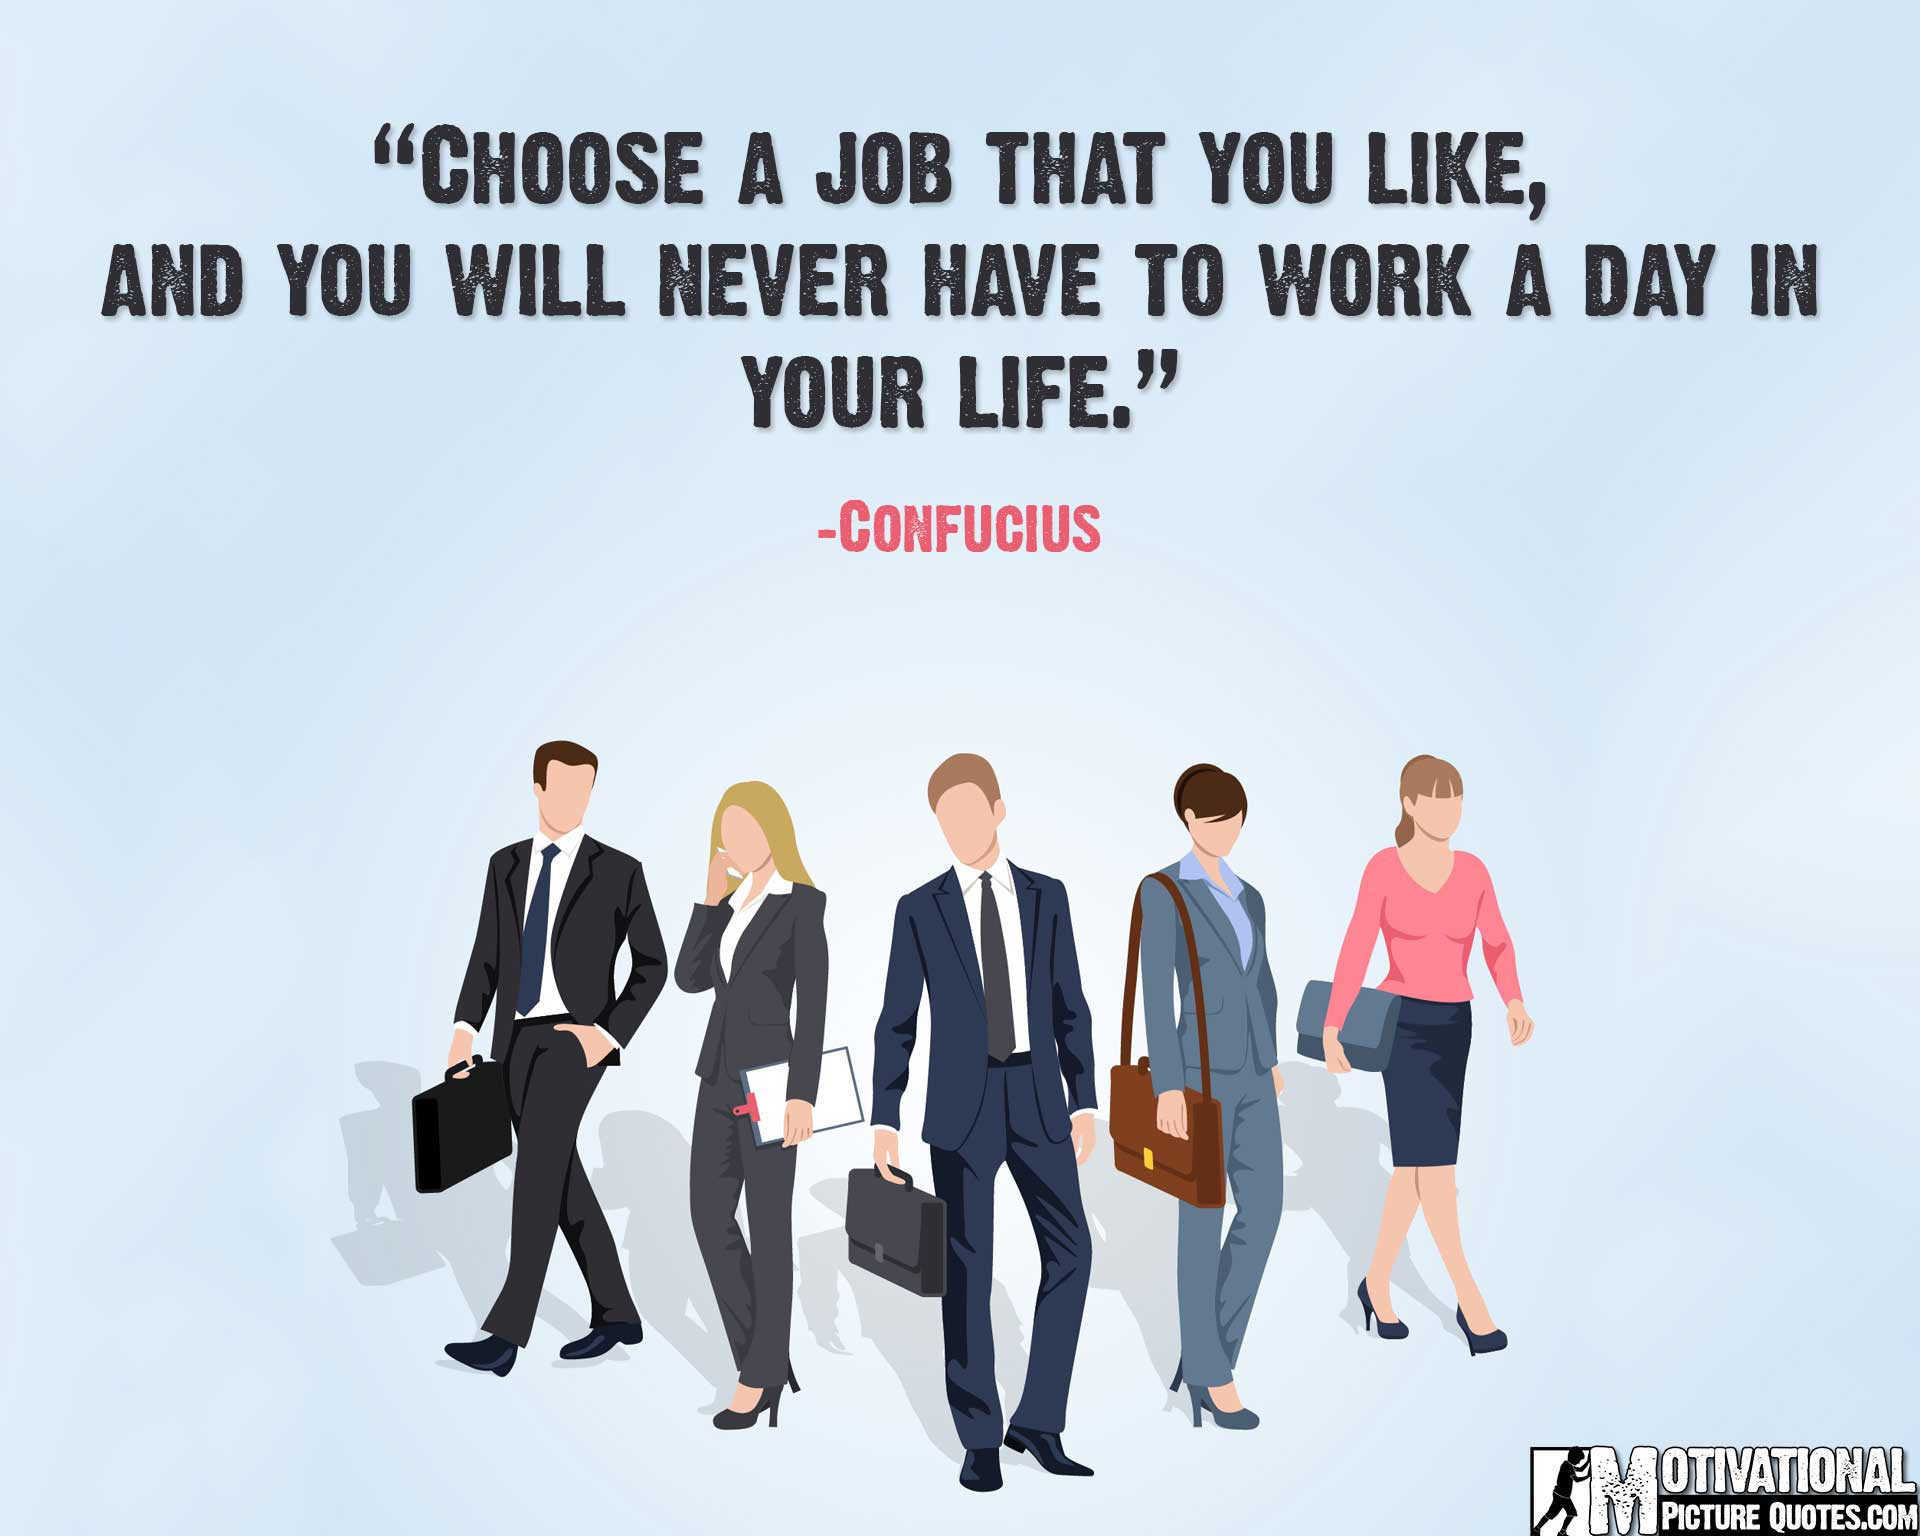 Employee Motivation Quotes 10 Job Satisfaction And Motivational Quotes With Images  Insbright